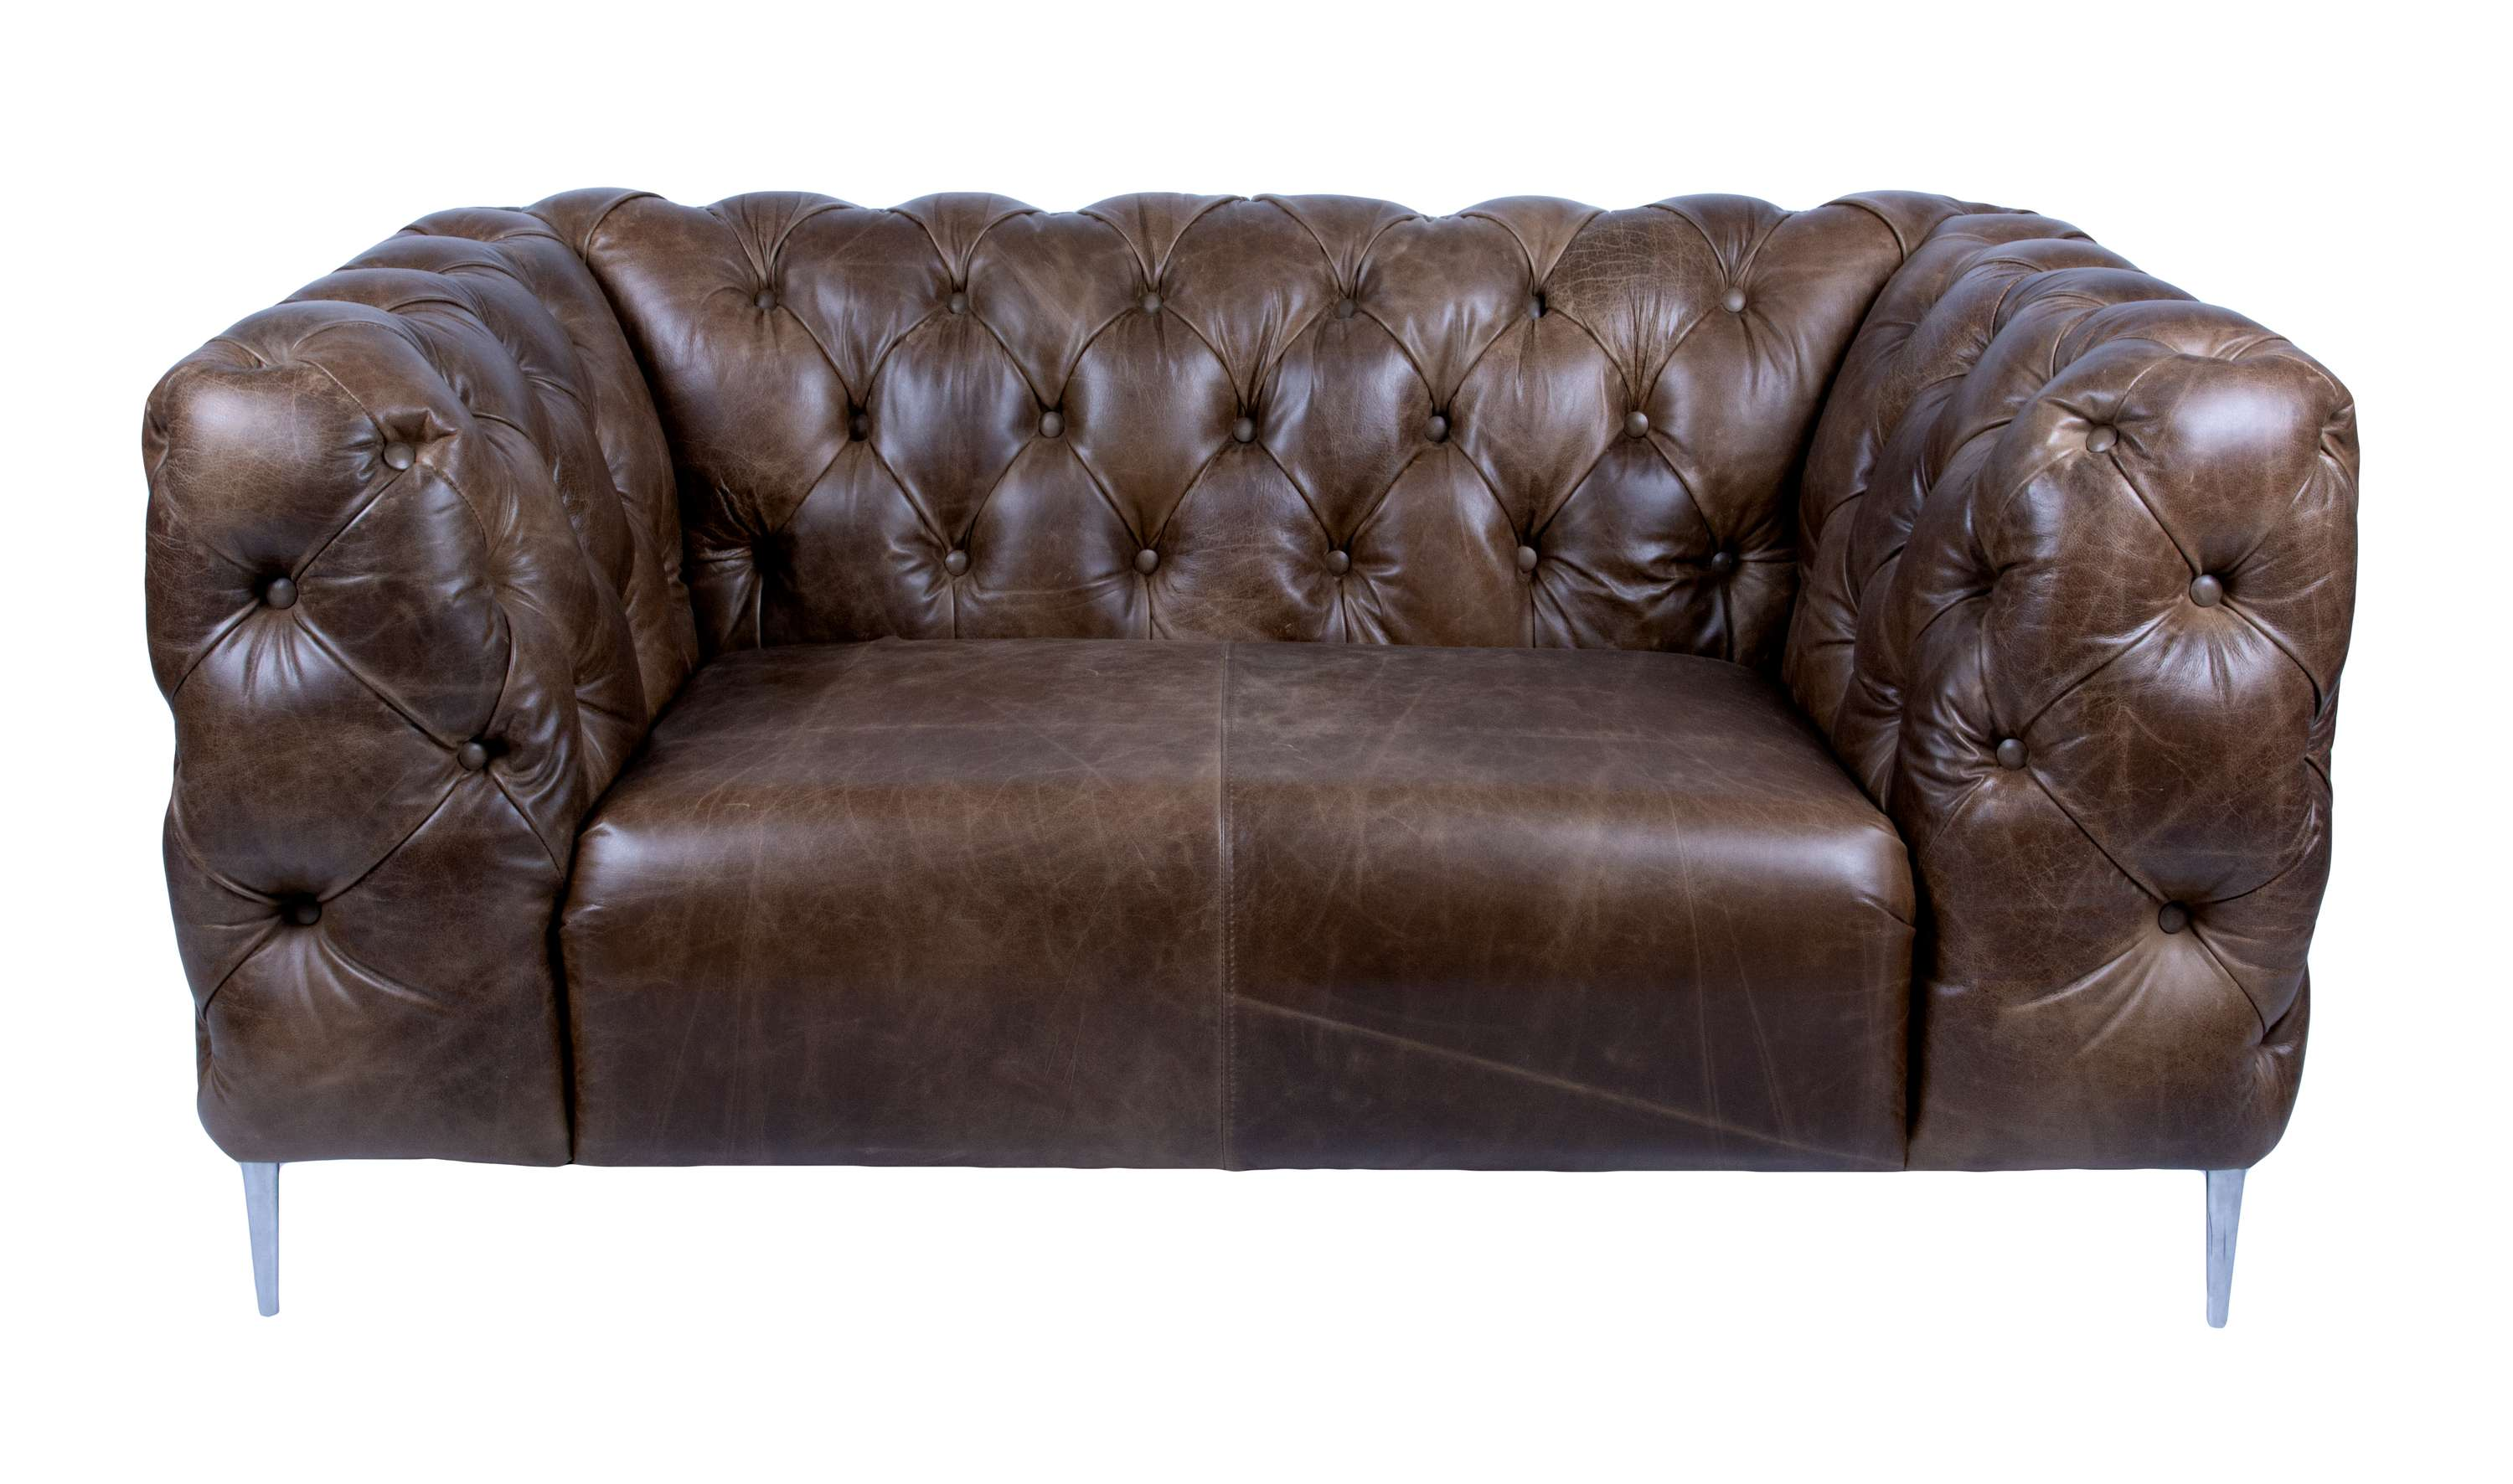 Excellent Italian Vintage Leather Sofa Product Photography Shoot Gmtry Best Dining Table And Chair Ideas Images Gmtryco